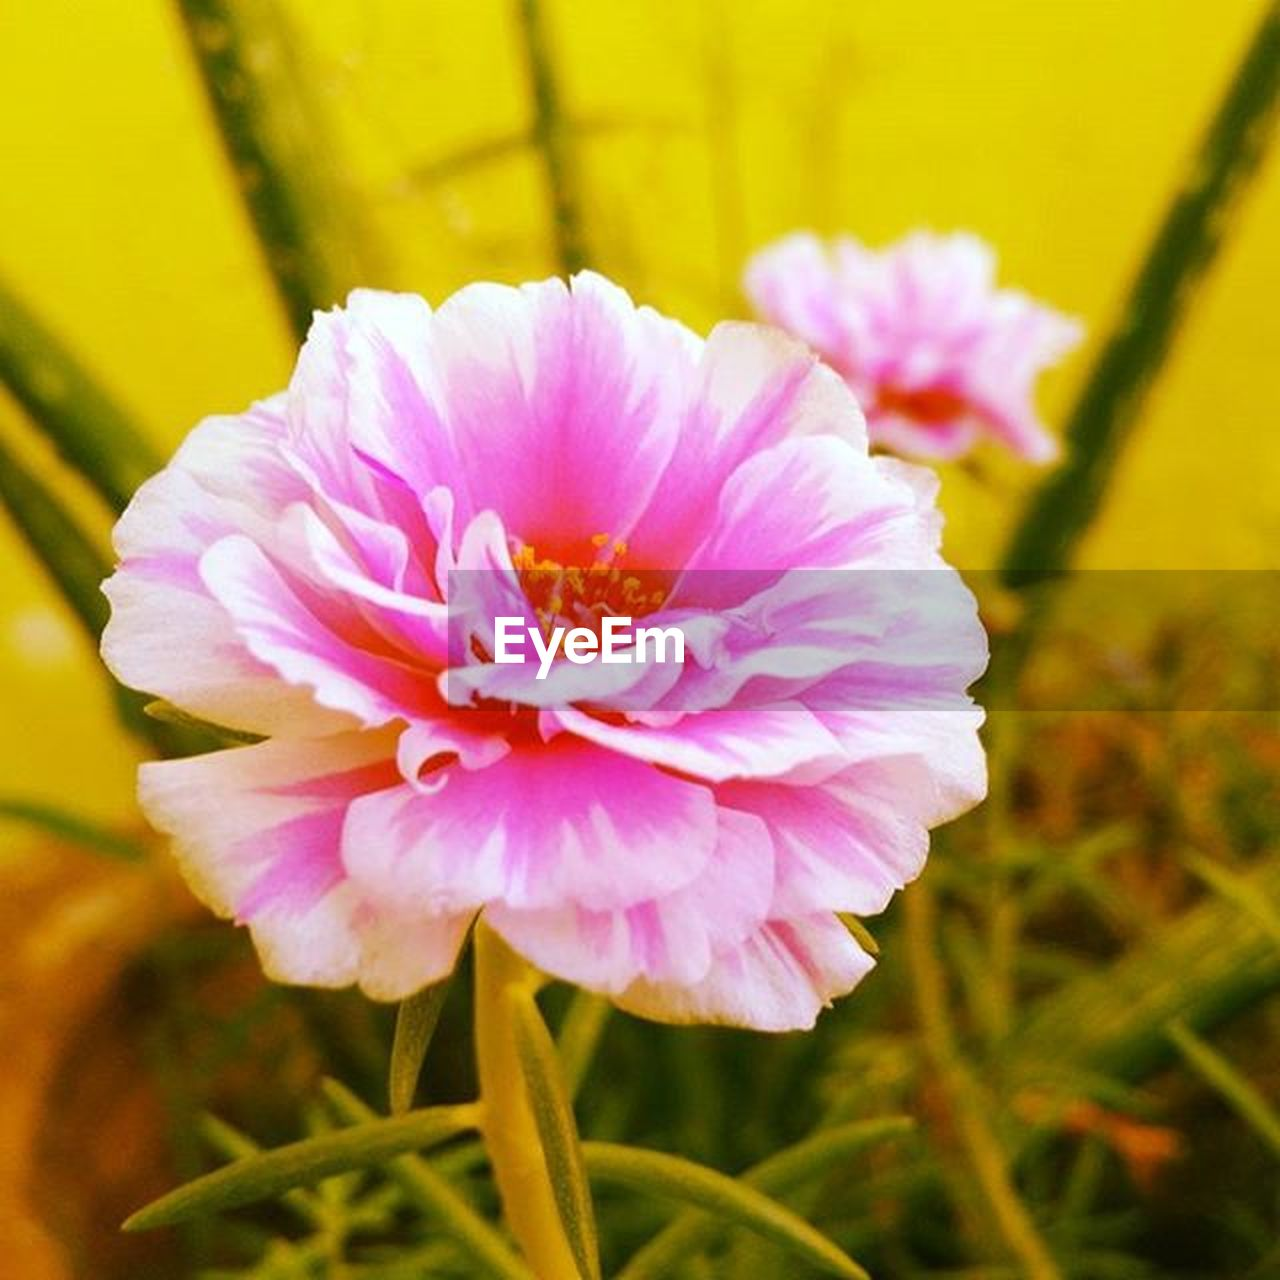 flower, nature, petal, beauty in nature, flower head, close-up, fragility, plant, pink color, focus on foreground, no people, freshness, peony, growth, outdoors, day, grass